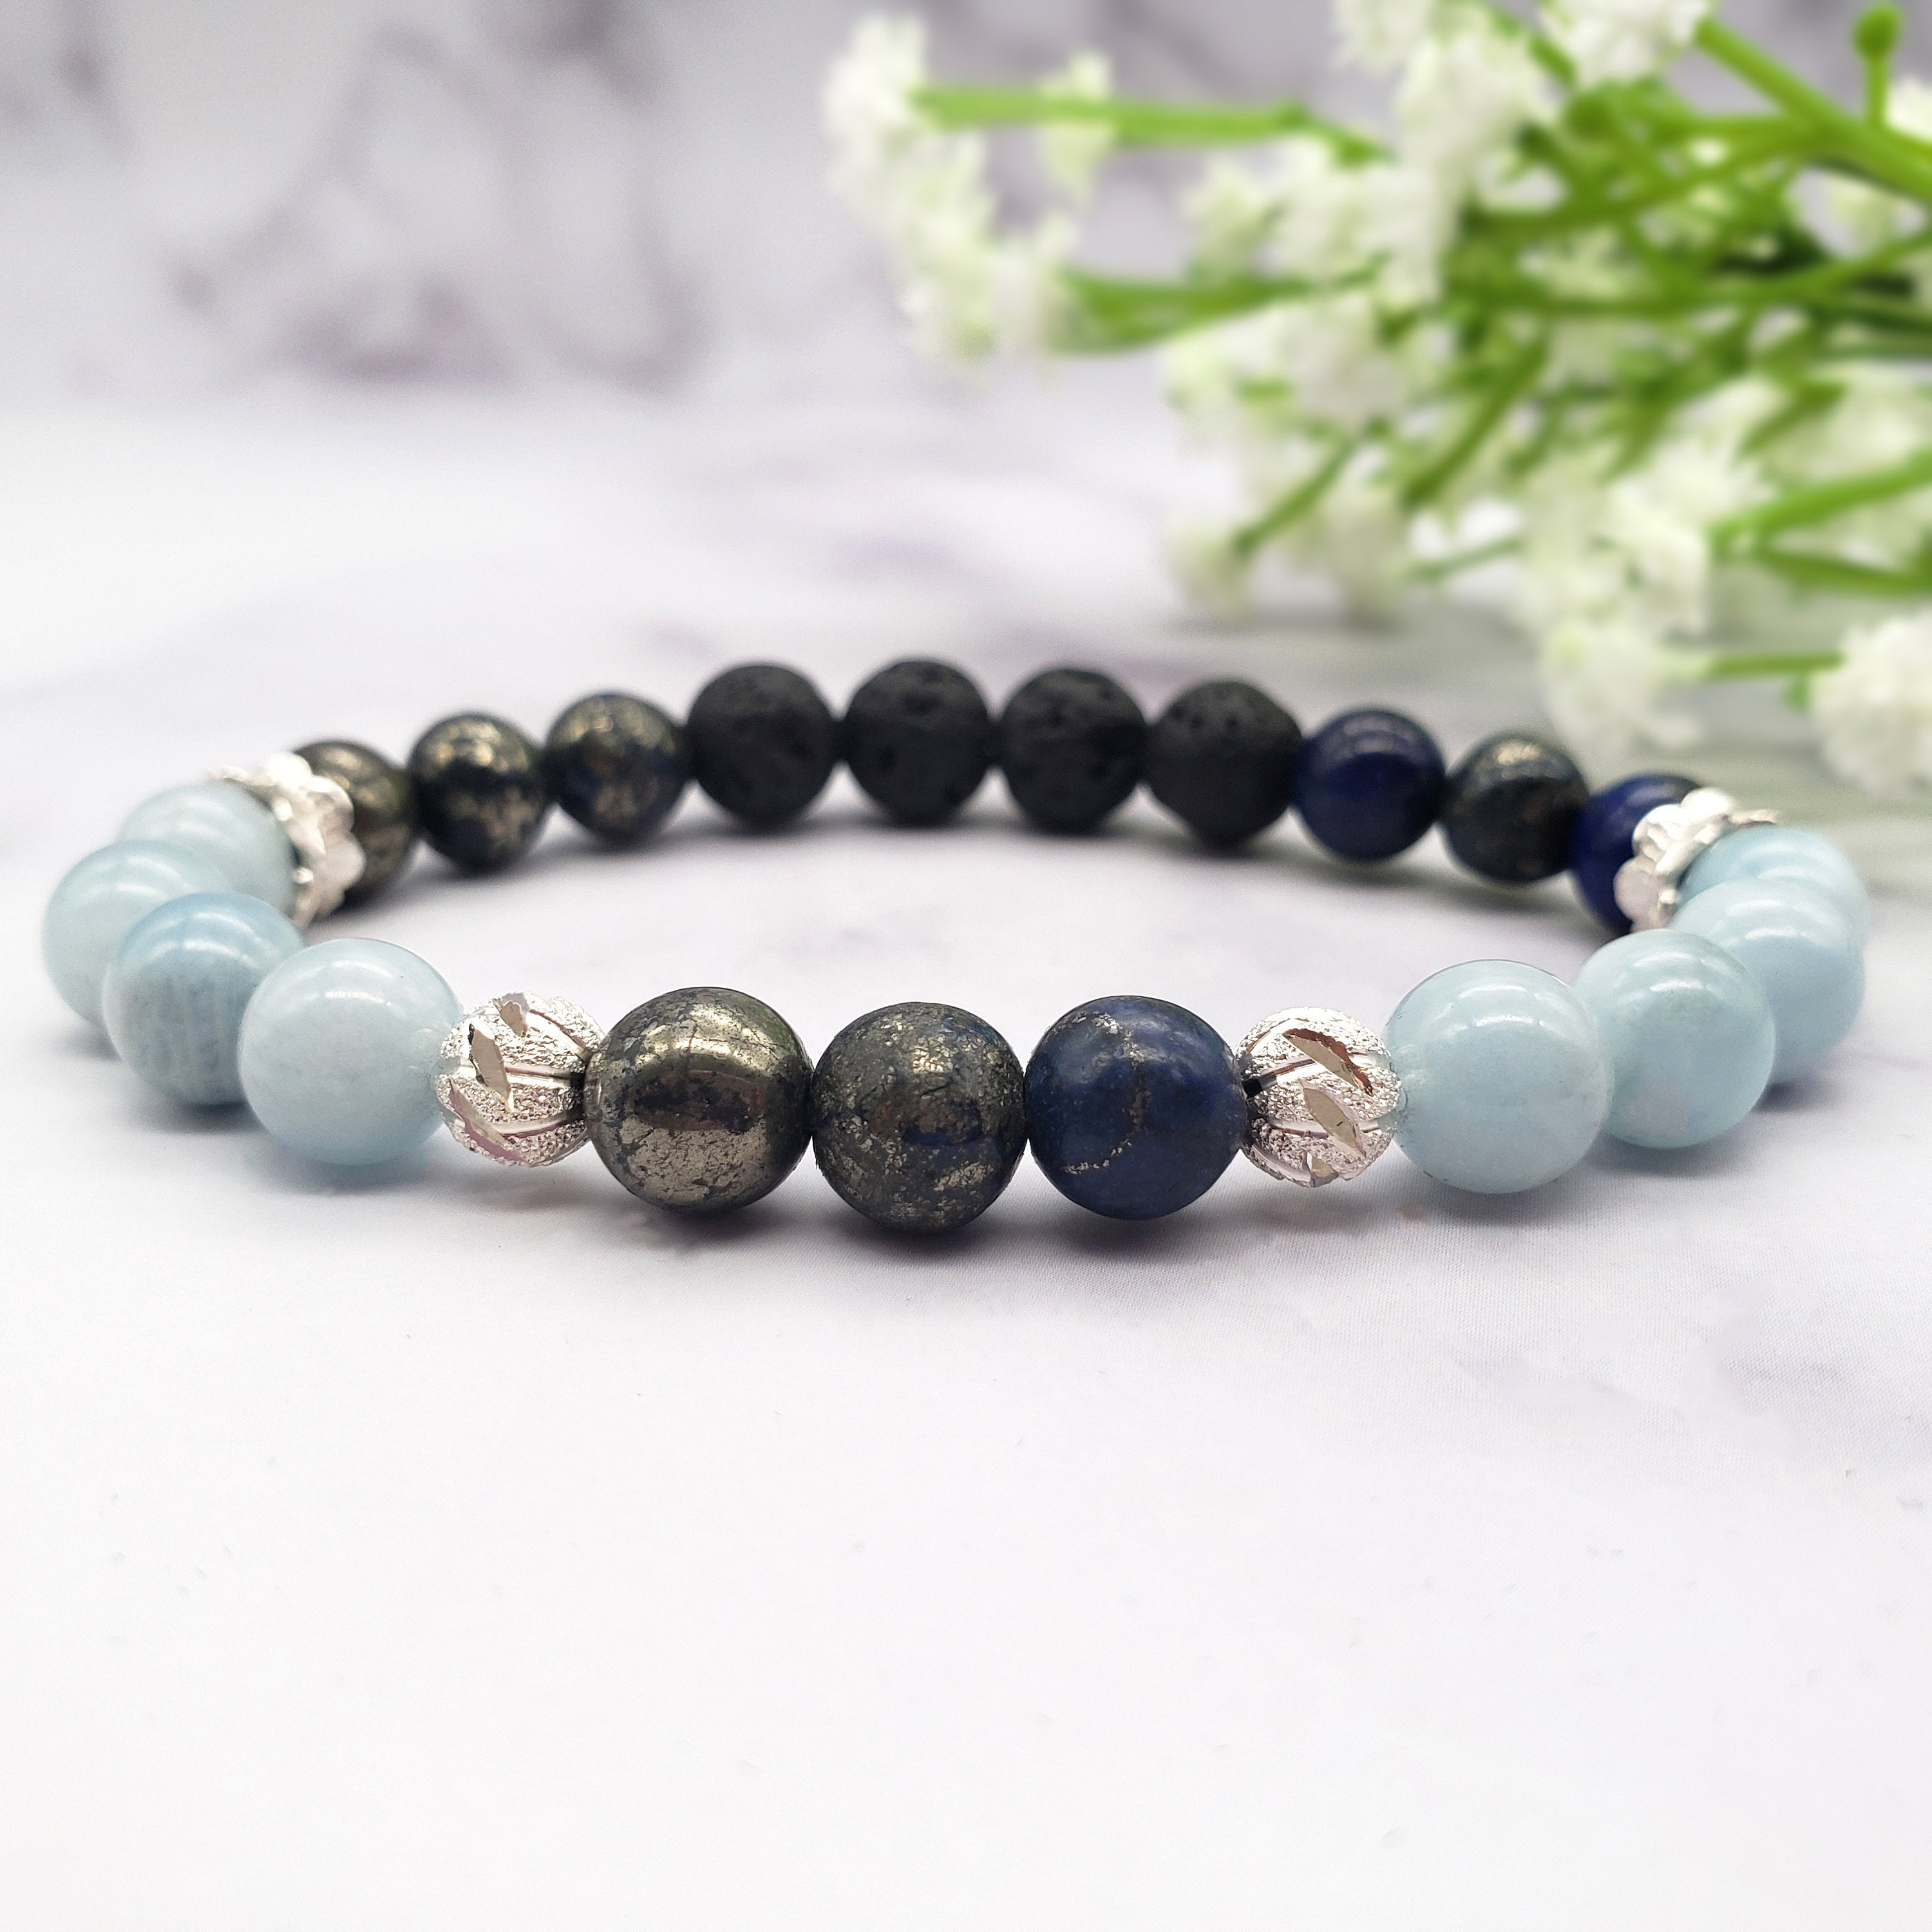 Prosperity, Money, Wealth, Luck & Abundance Gemstone Diffuser Bracelet, Healing Crystals -  8mm Aquamarine, Sky Blue Pyrite, Lava Stones